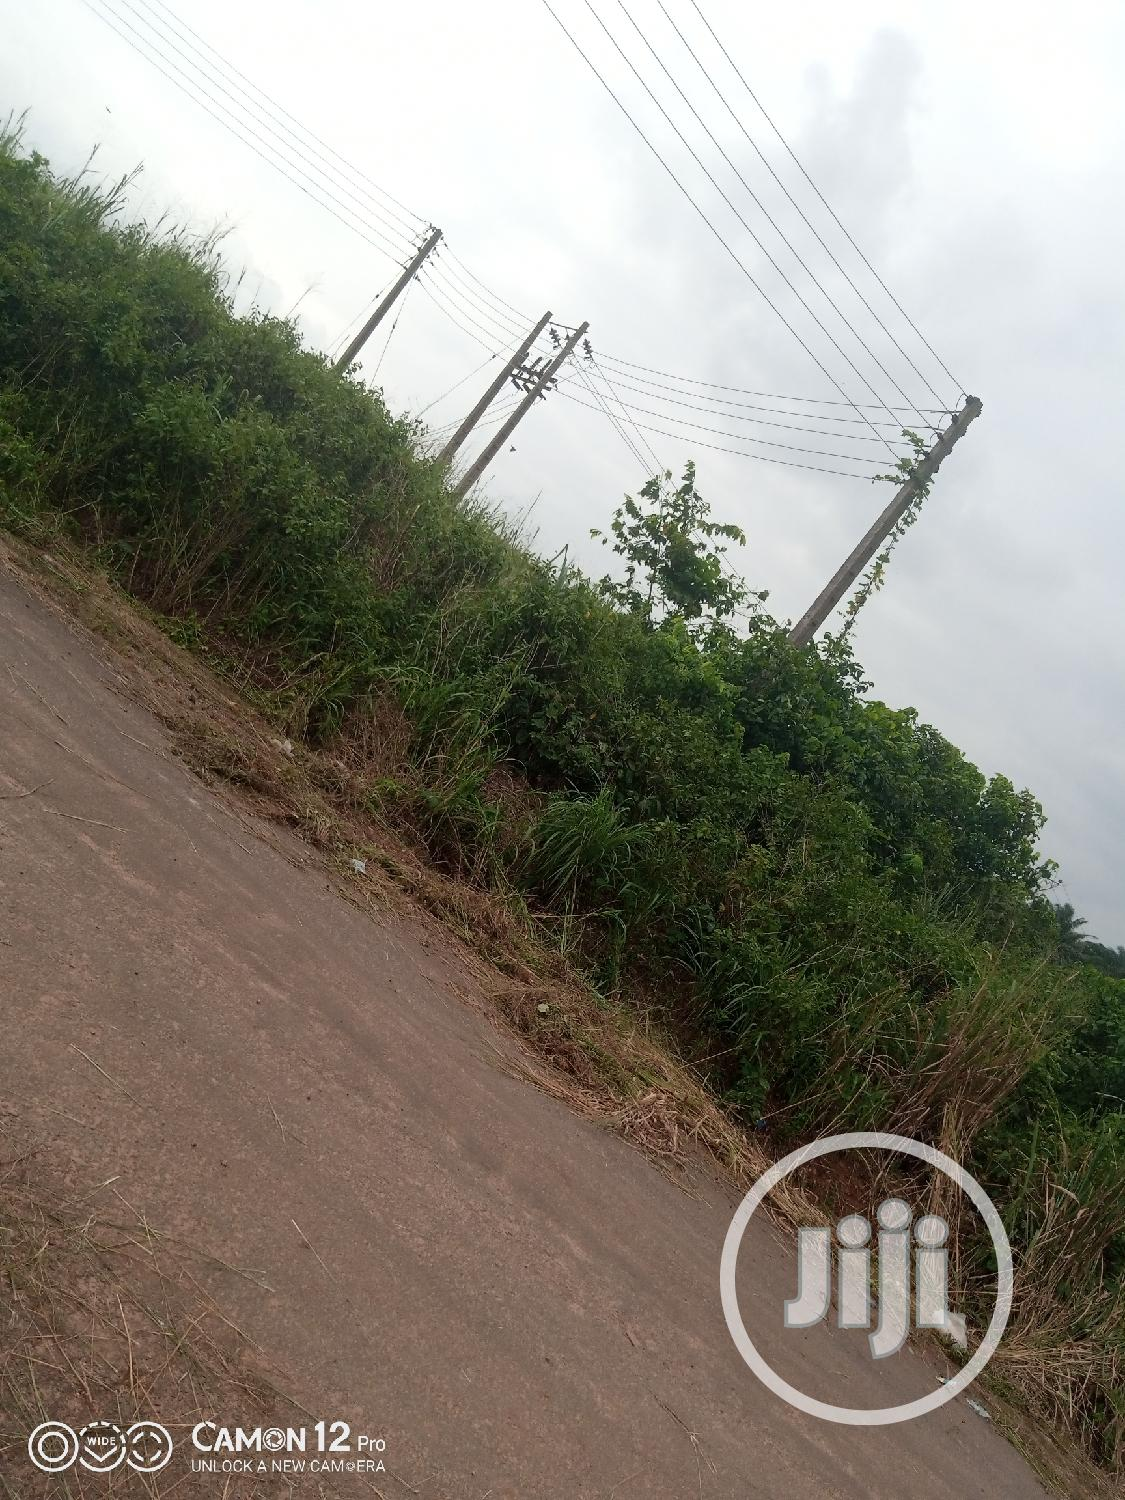 Virgin Land for Sale in Epe Lagos